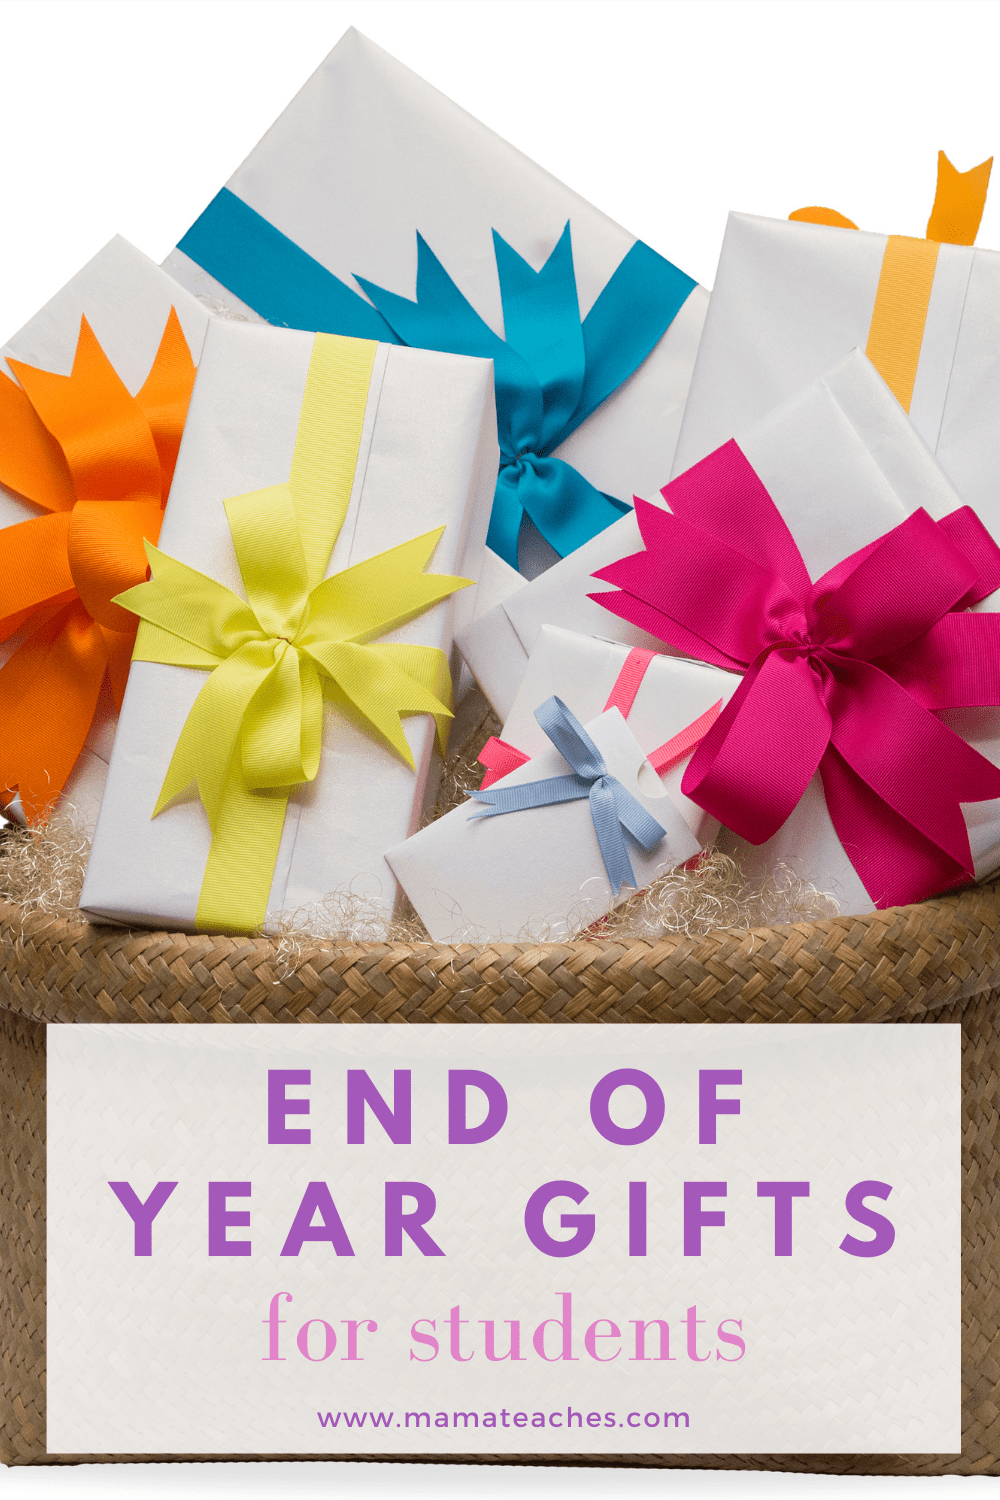 End of Year Gifts for Students